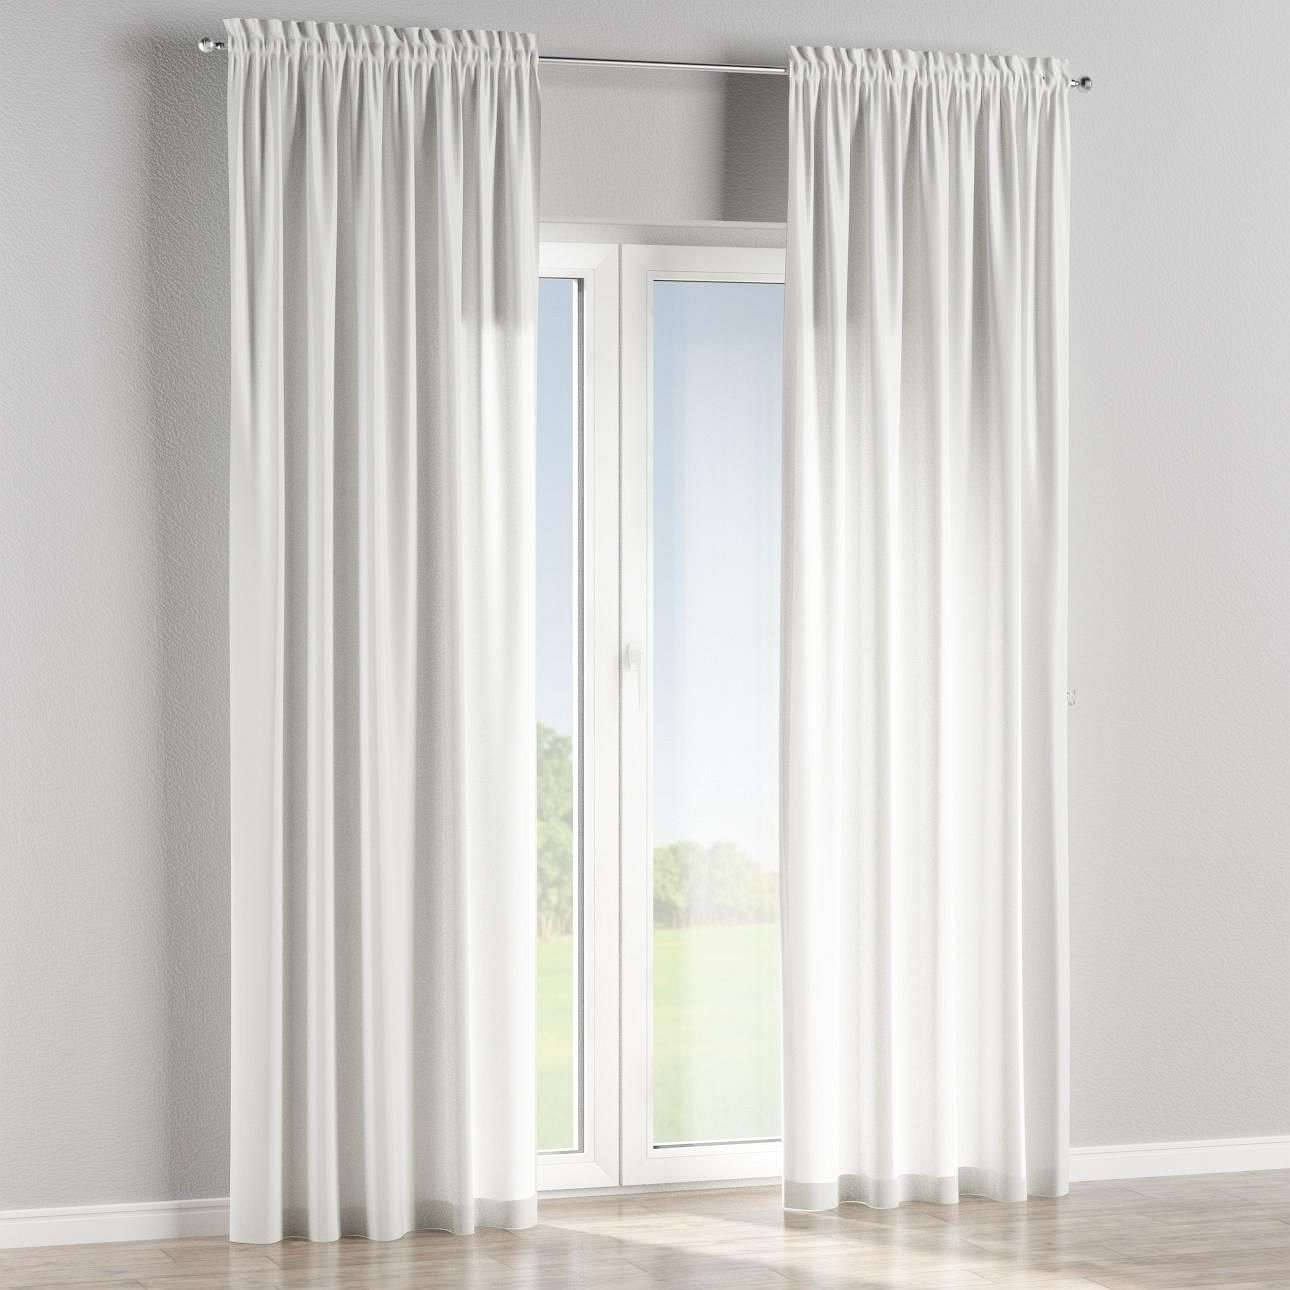 Slot and frill lined curtains in collection Londres, fabric: 140-43